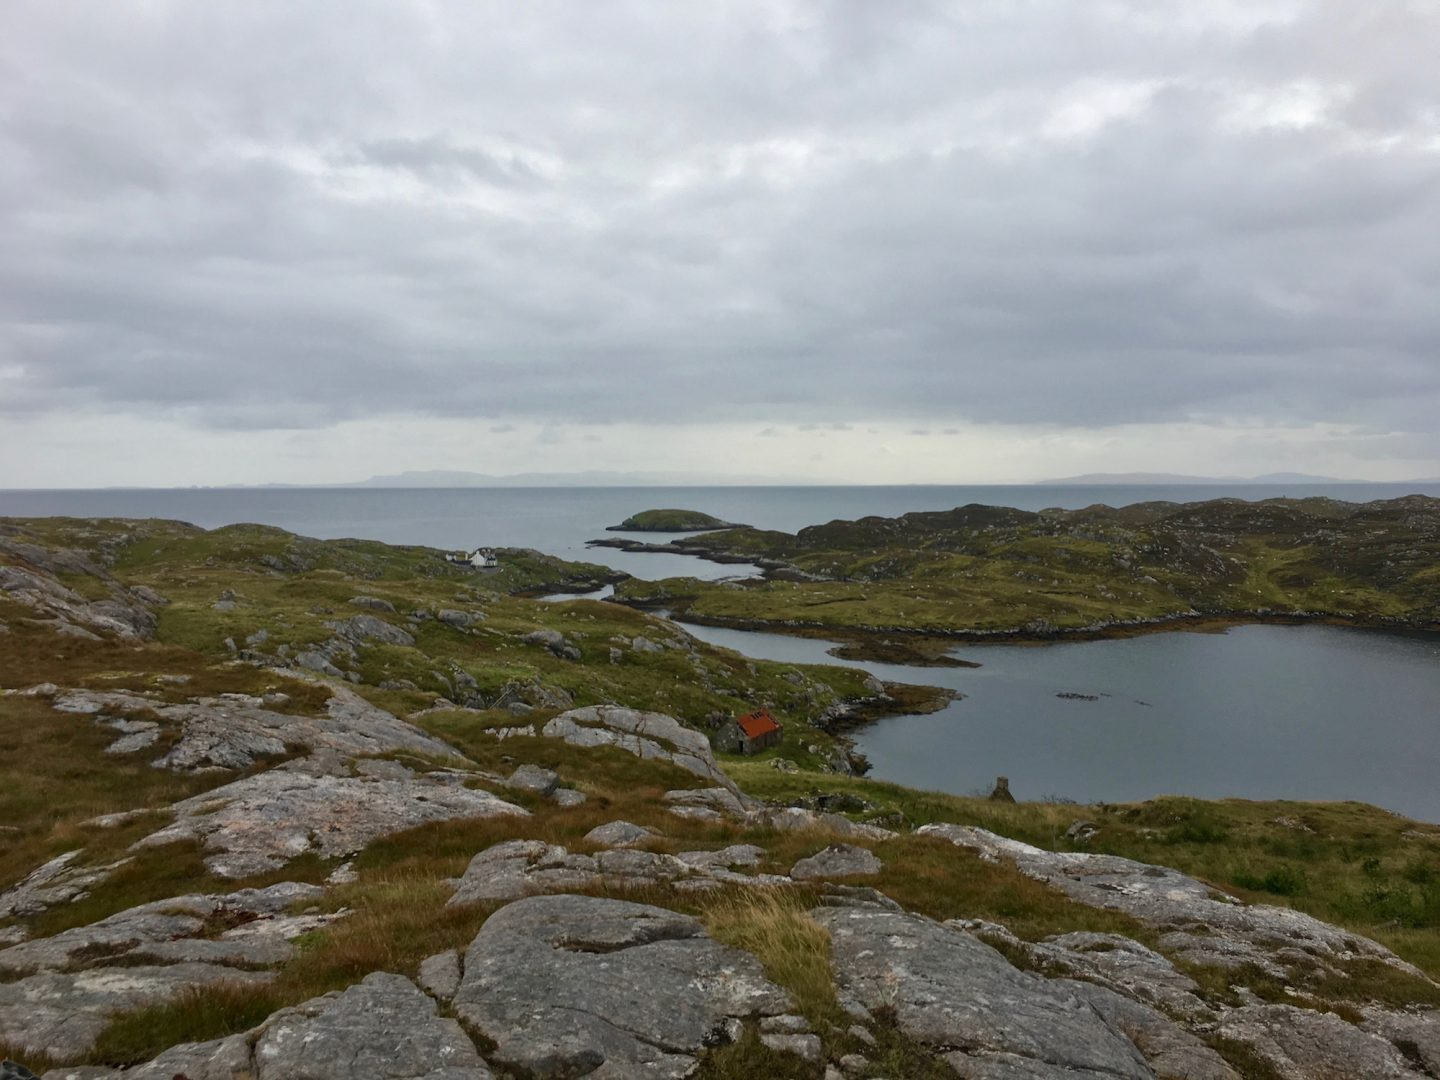 View towards Isle of Skye from the Golden Road, Harris